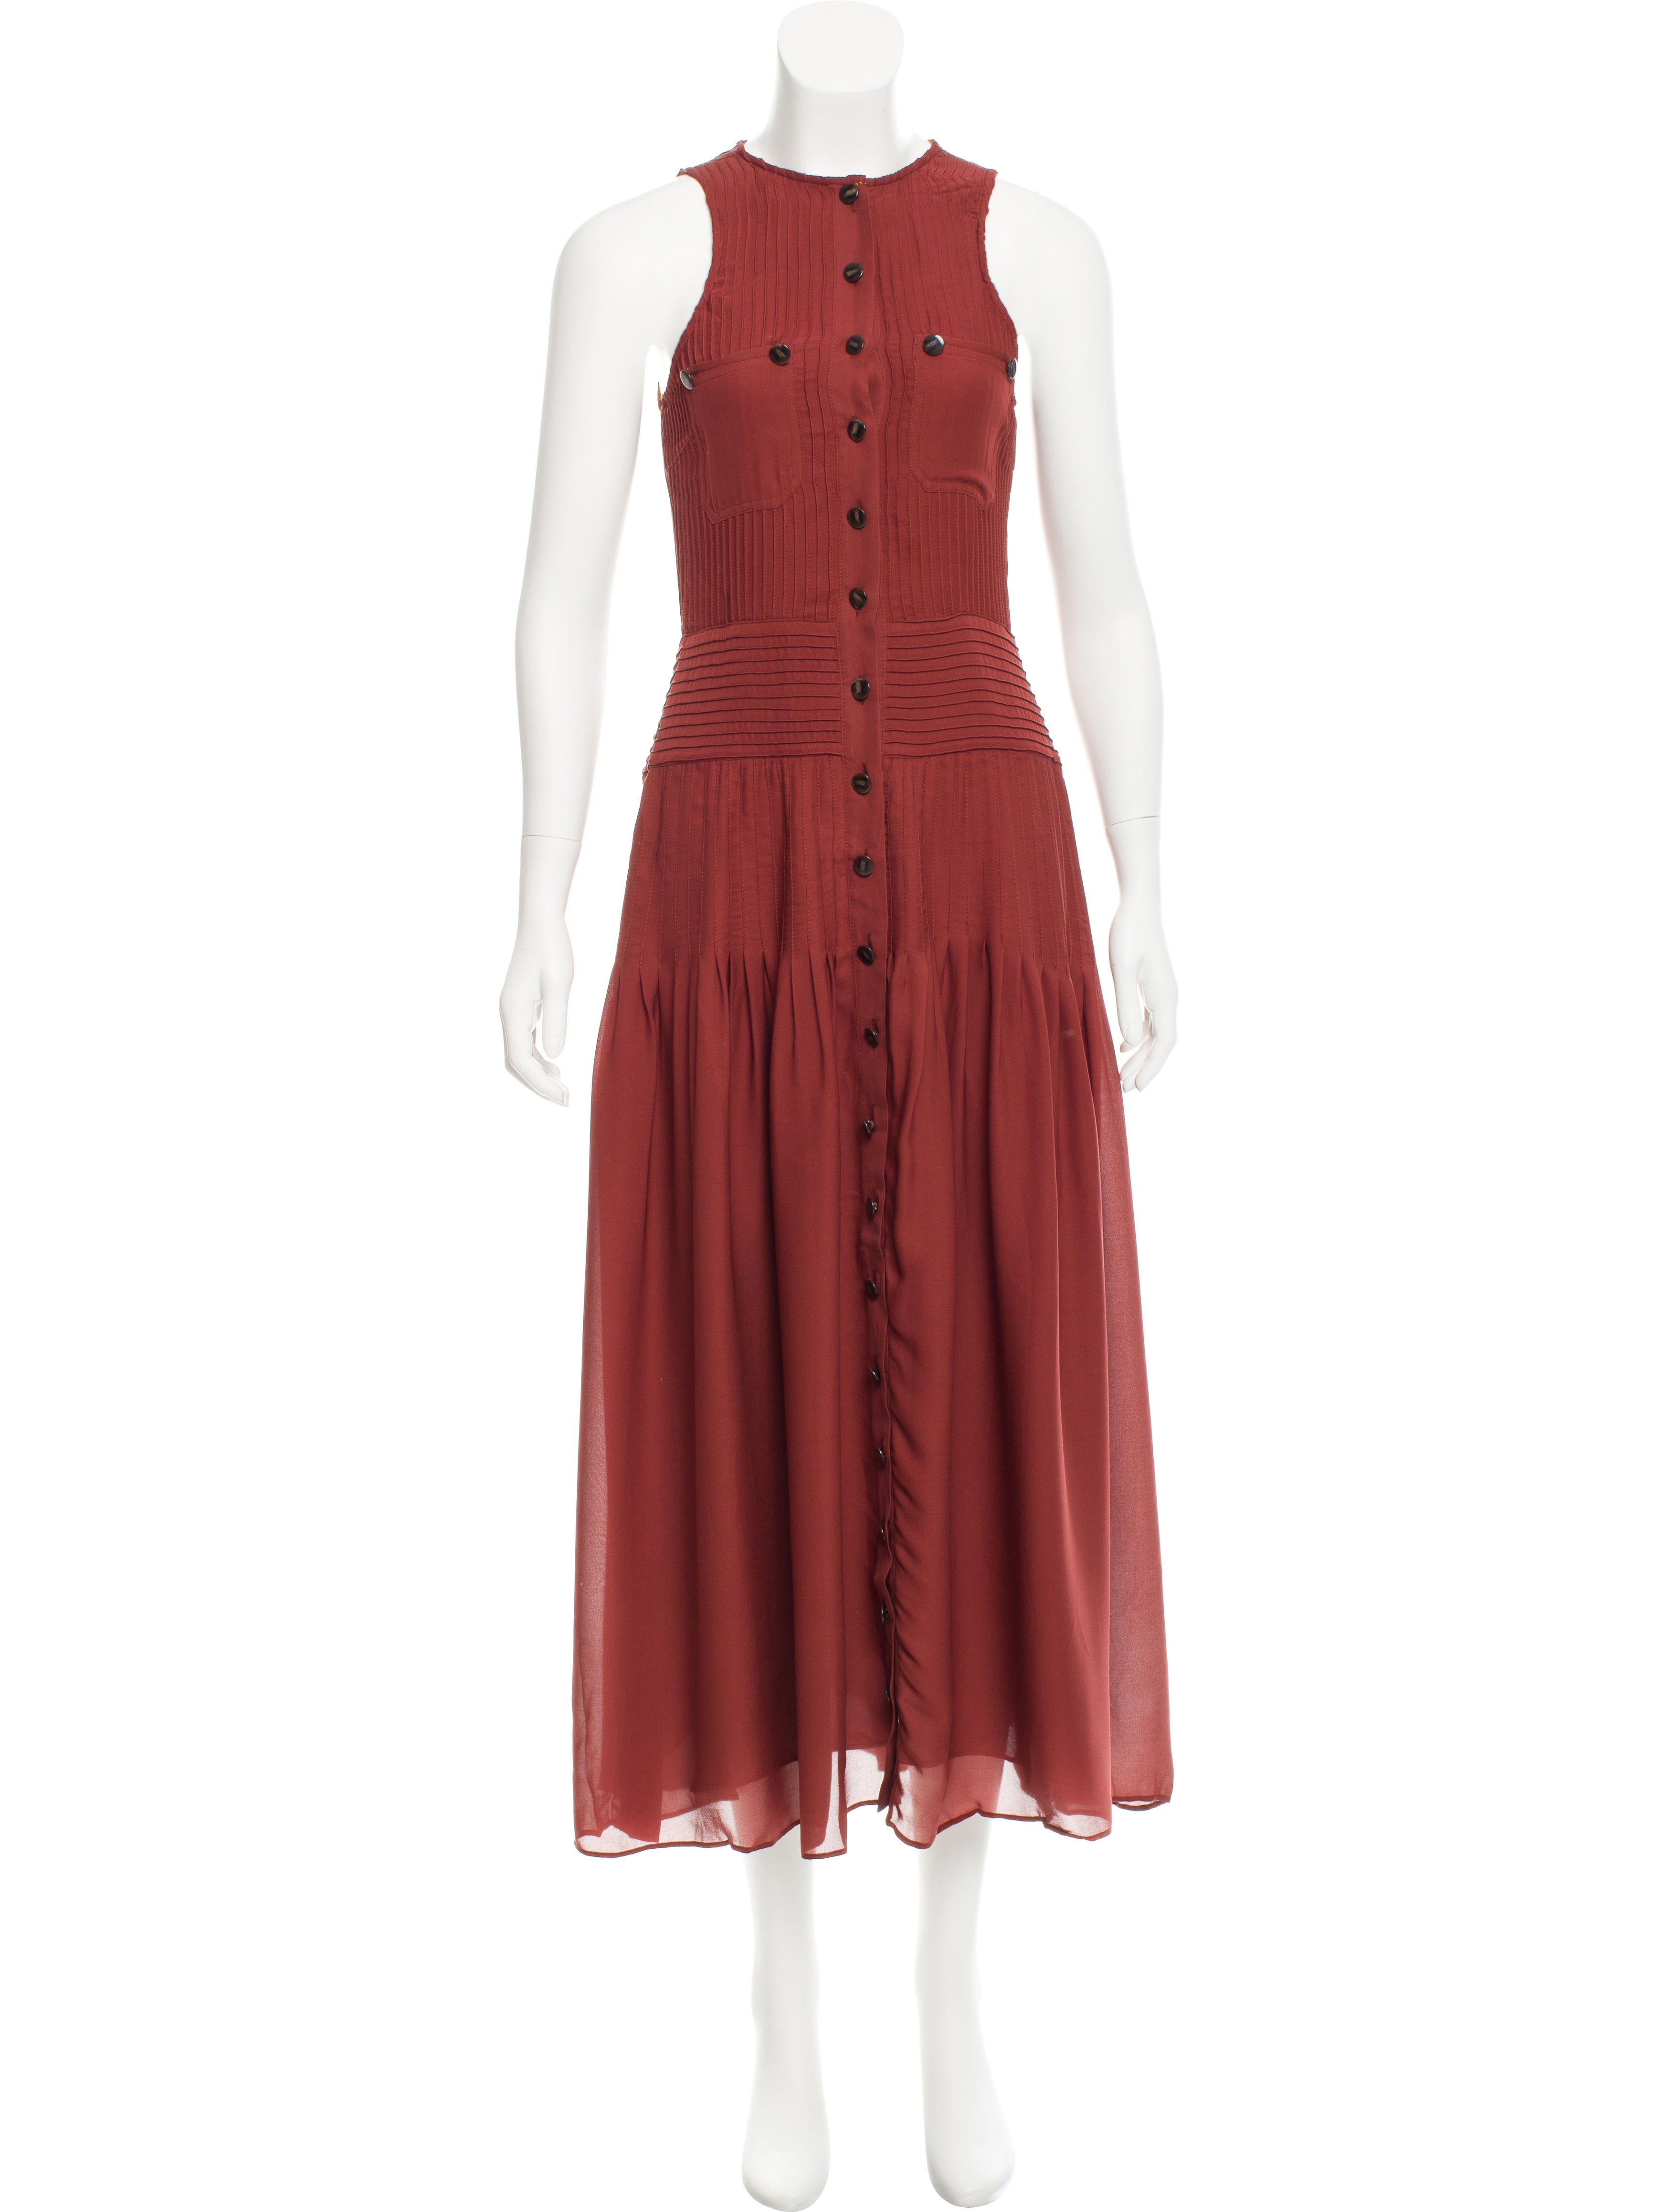 Detailed with a pleated front, Giorgio Armani's dress is composed of red silk georgette. A classic look from the Italian designer, the chic style is softly tailored for a figure-accenting effect.